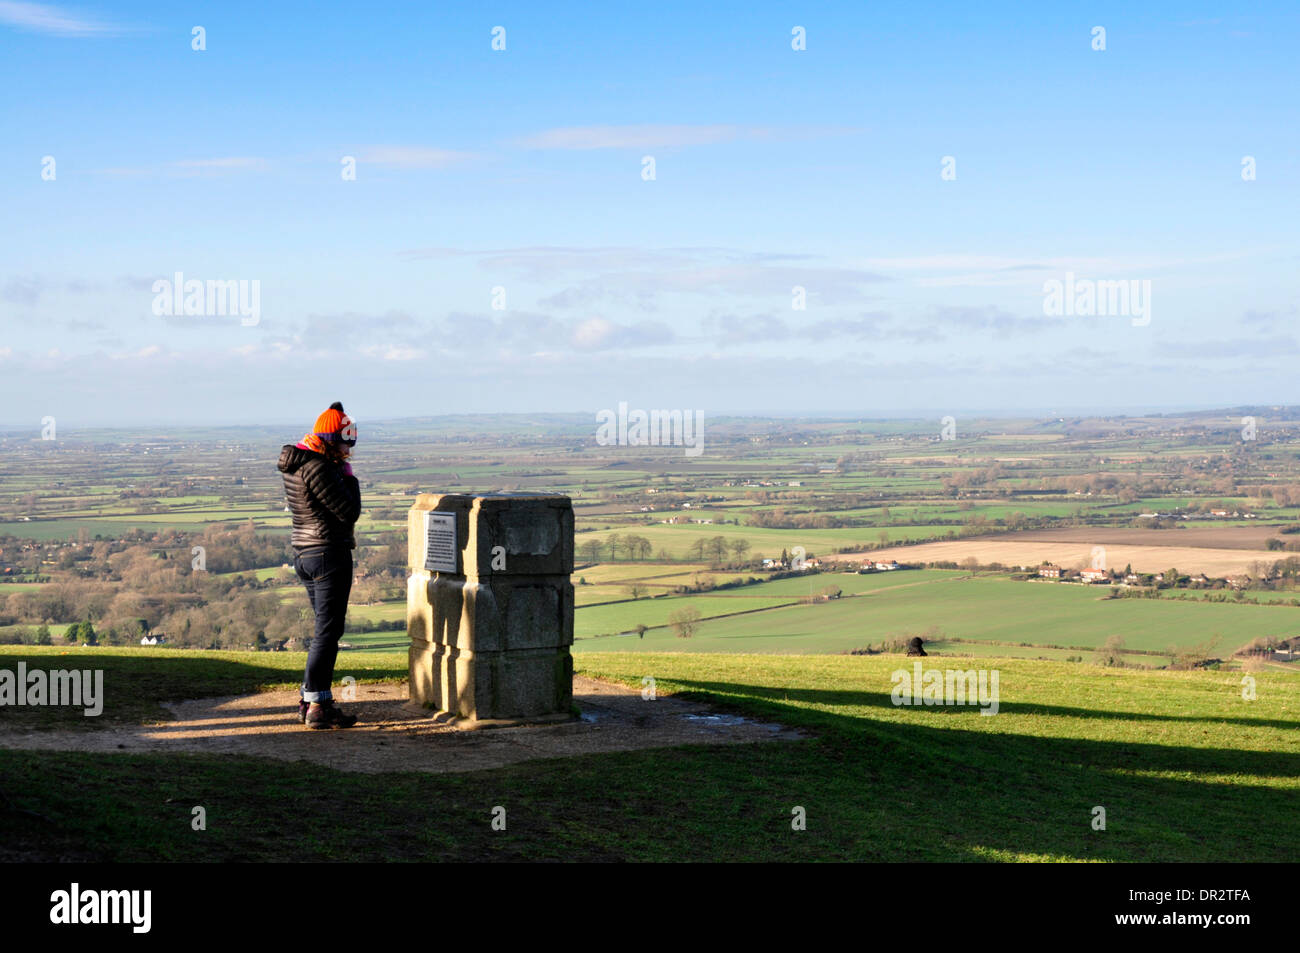 Bucks - Chiltern Hills - on Coombe Hill overlooking Vale of Aylesbury - walker pausing to read dedication stone - winter sun - Stock Image